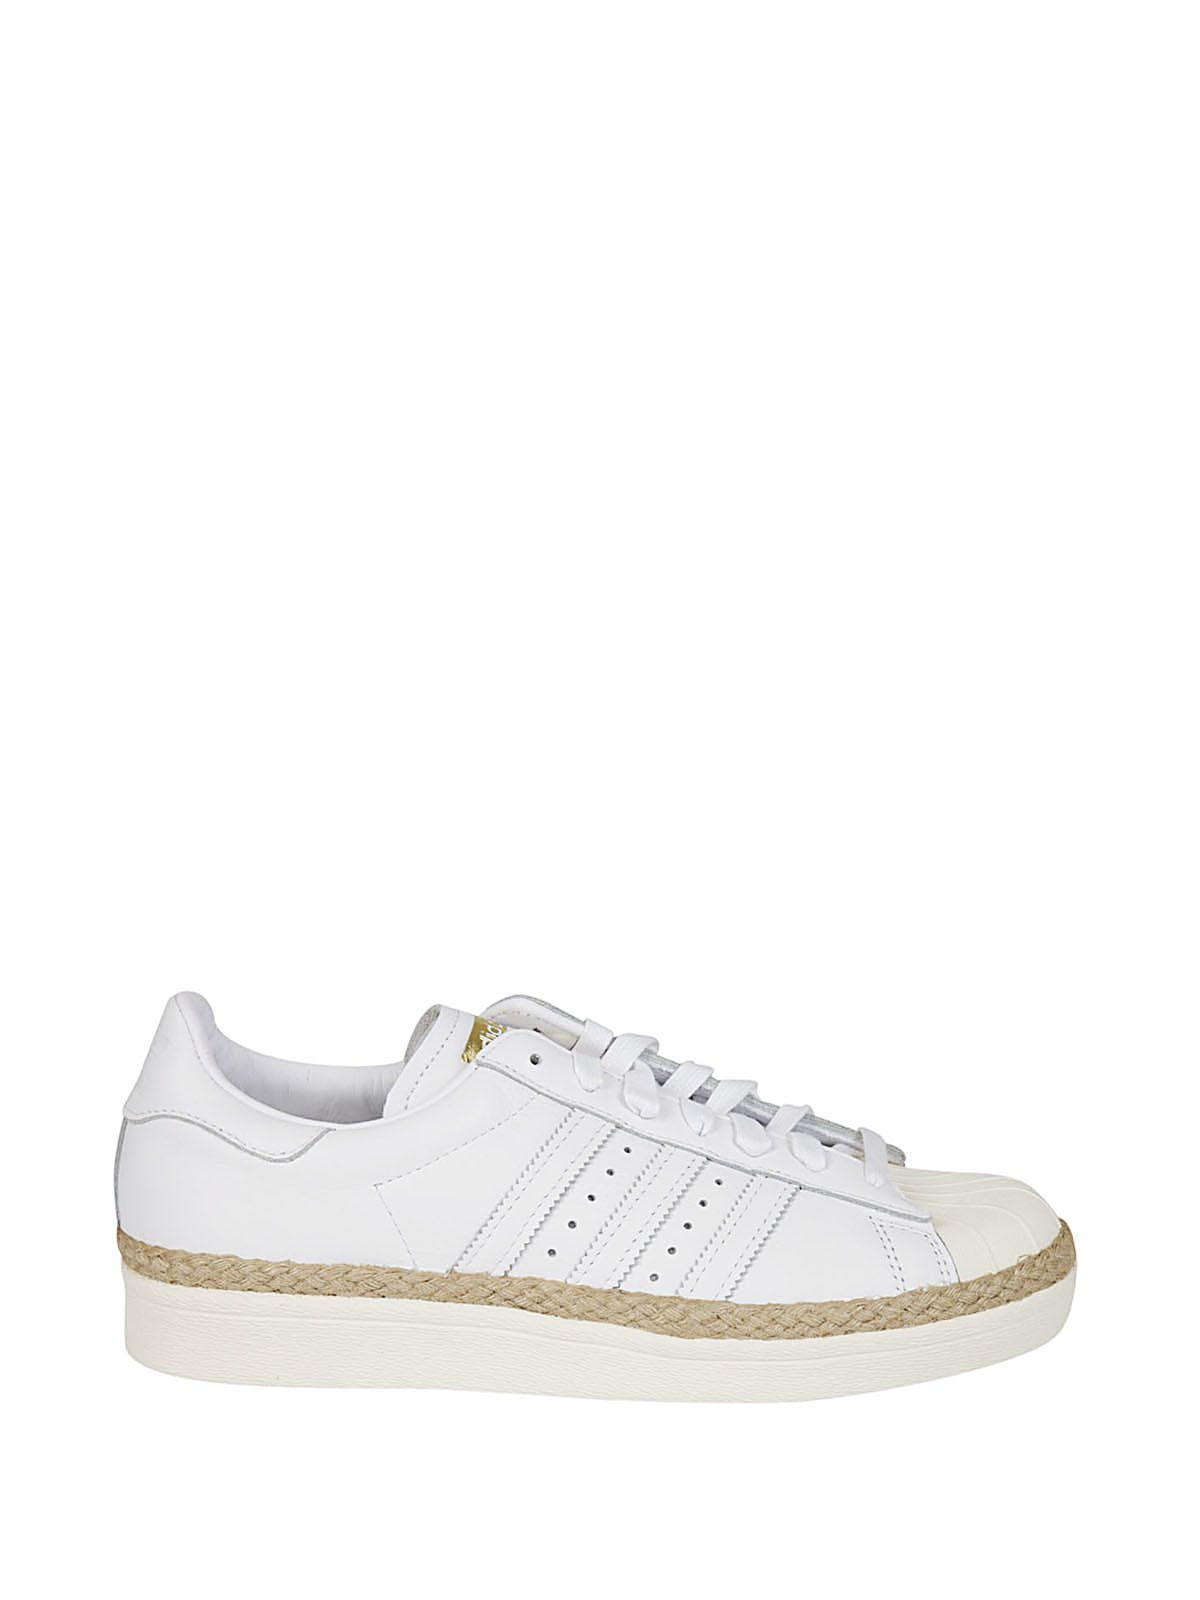 Adidas Originals Adidas Superstar 80s New Bold Sneakers - Bianca ...